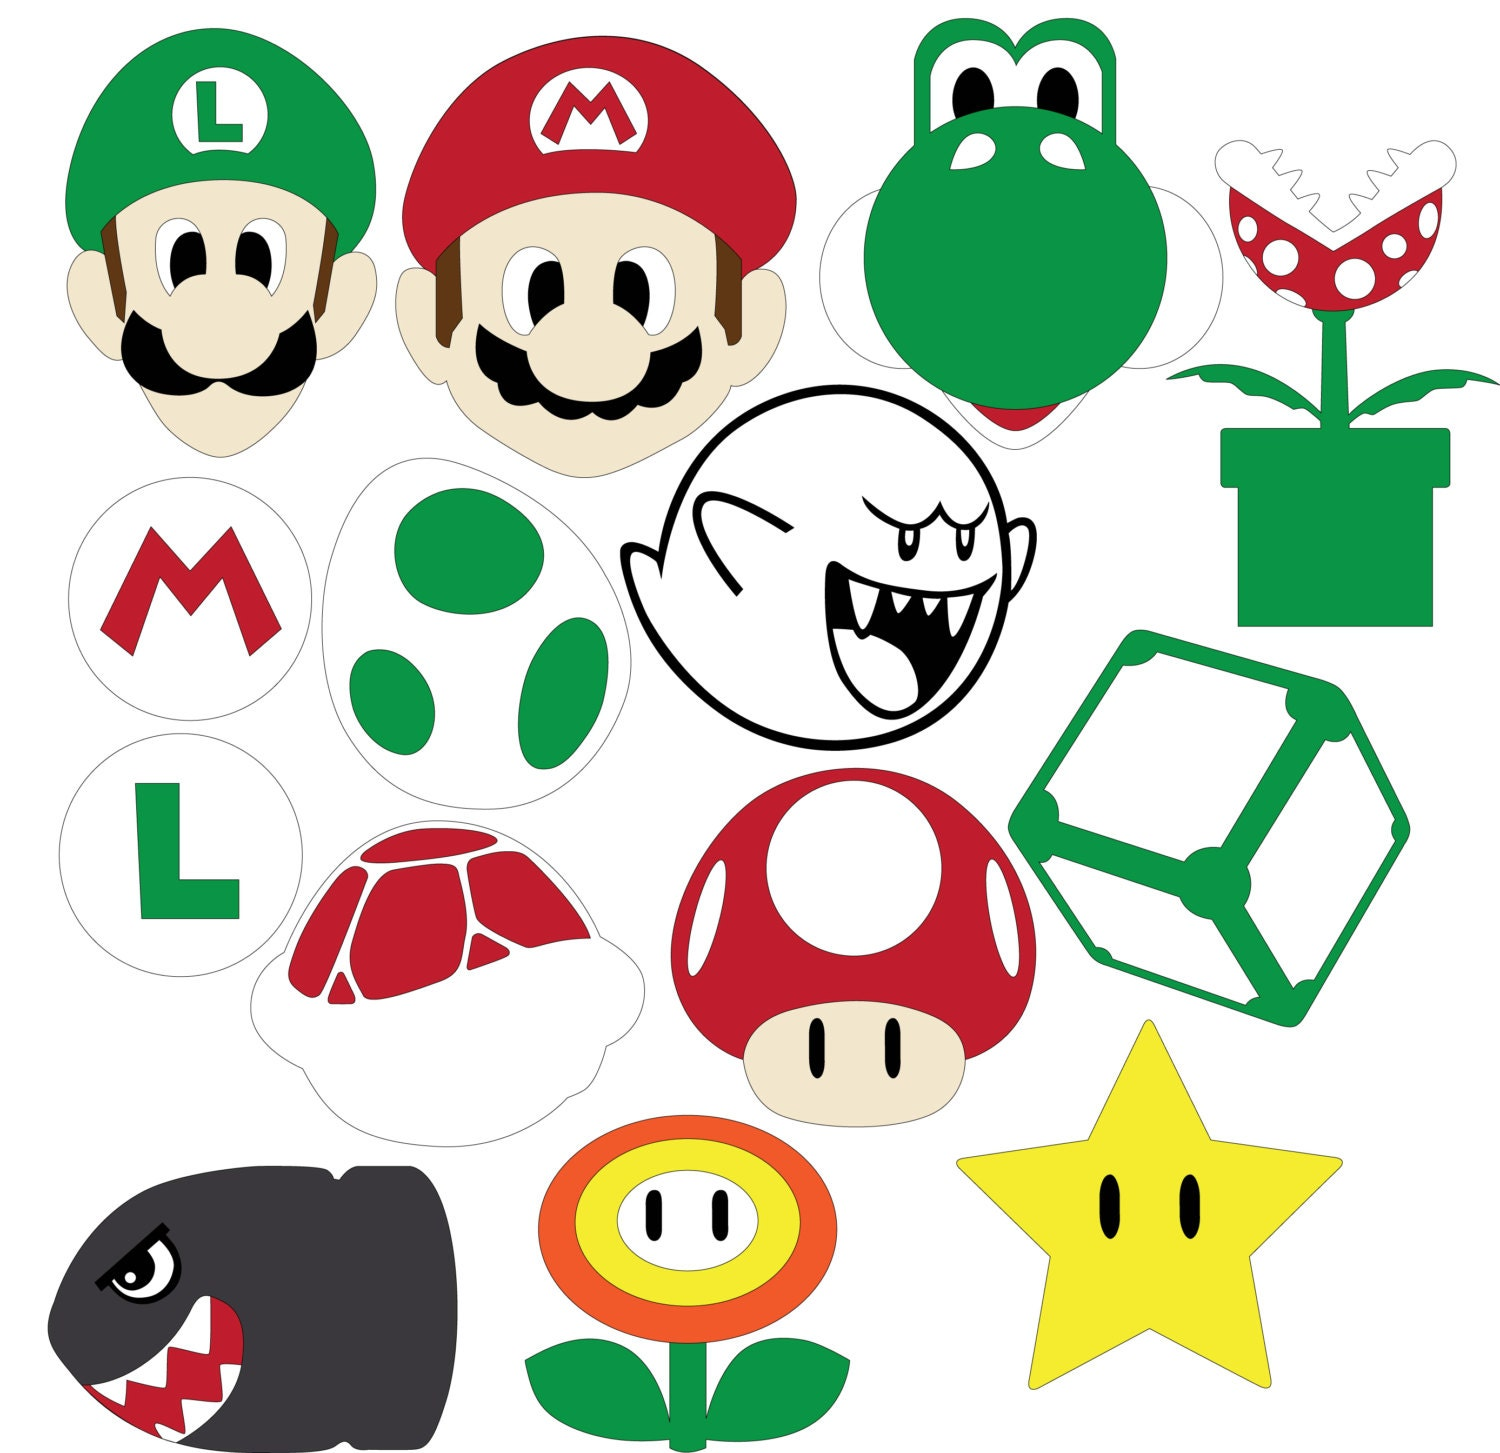 Mario Party Svg Amp Dxf Files From Hatchwork On Etsy Studio